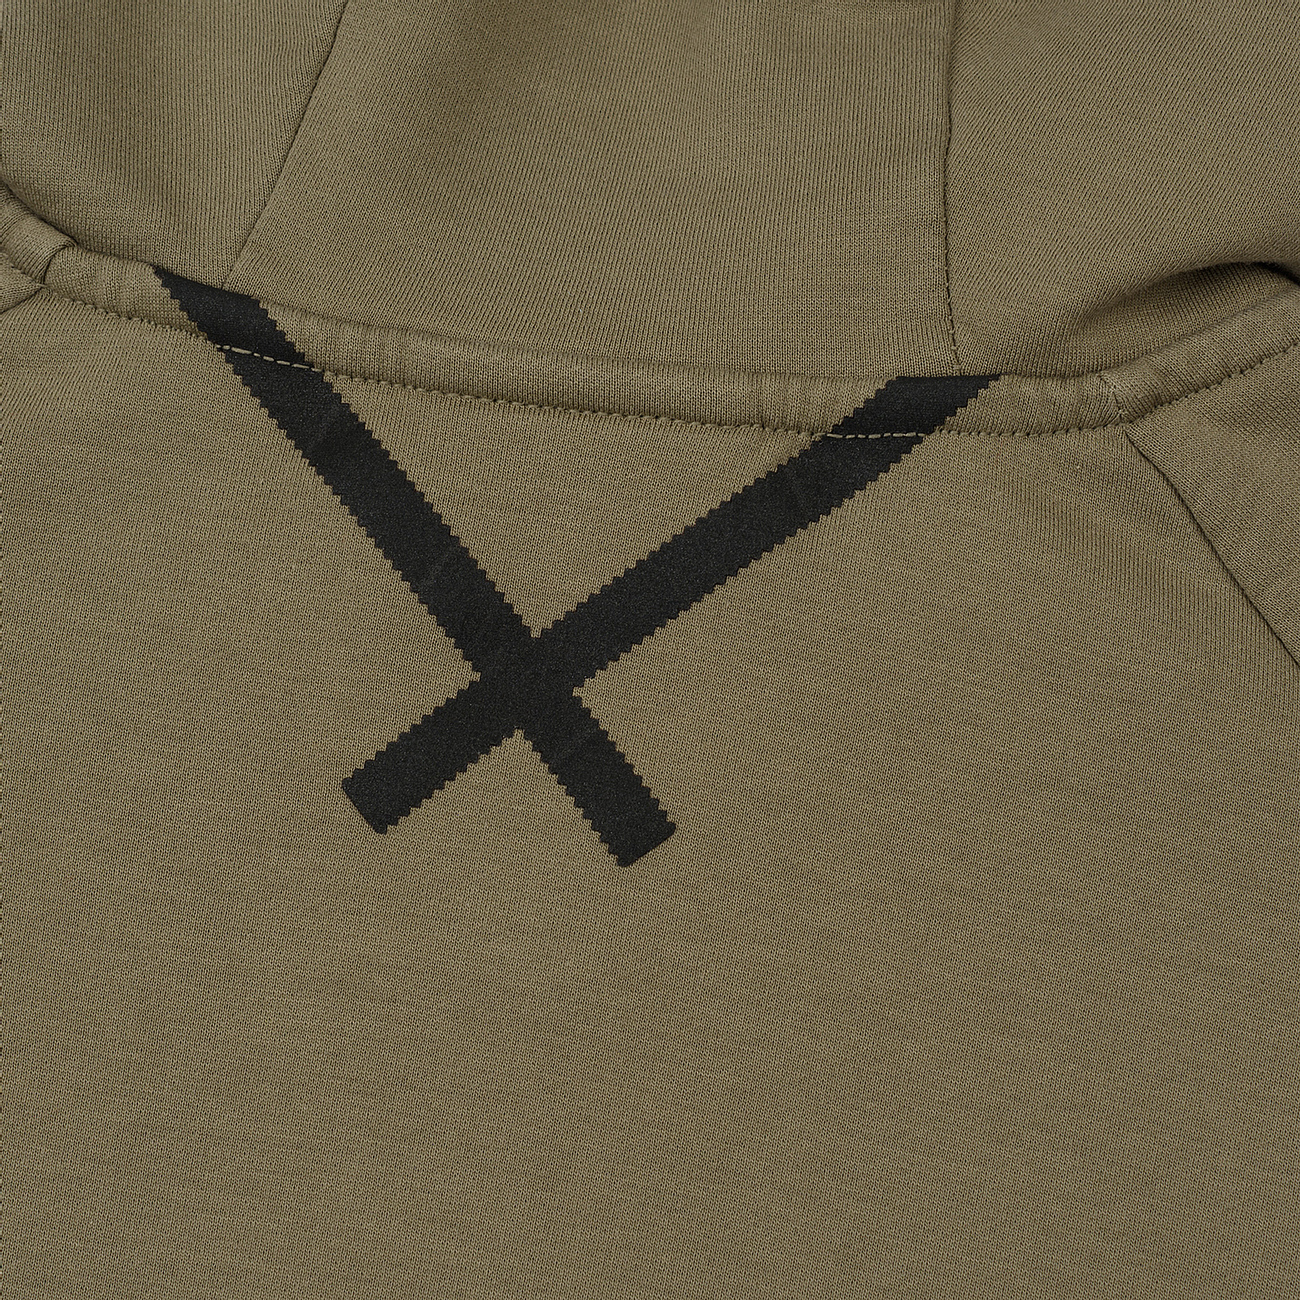 Adidas Originals x Oyster Holdings XBYO Full Zip Hoodie in Trace Cargo CW0749